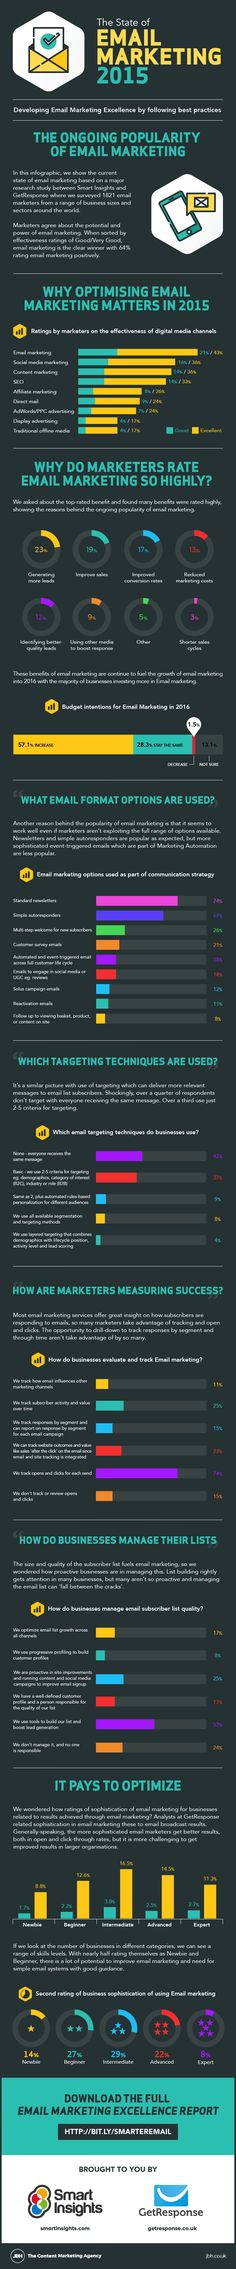 State of email marketing infographic